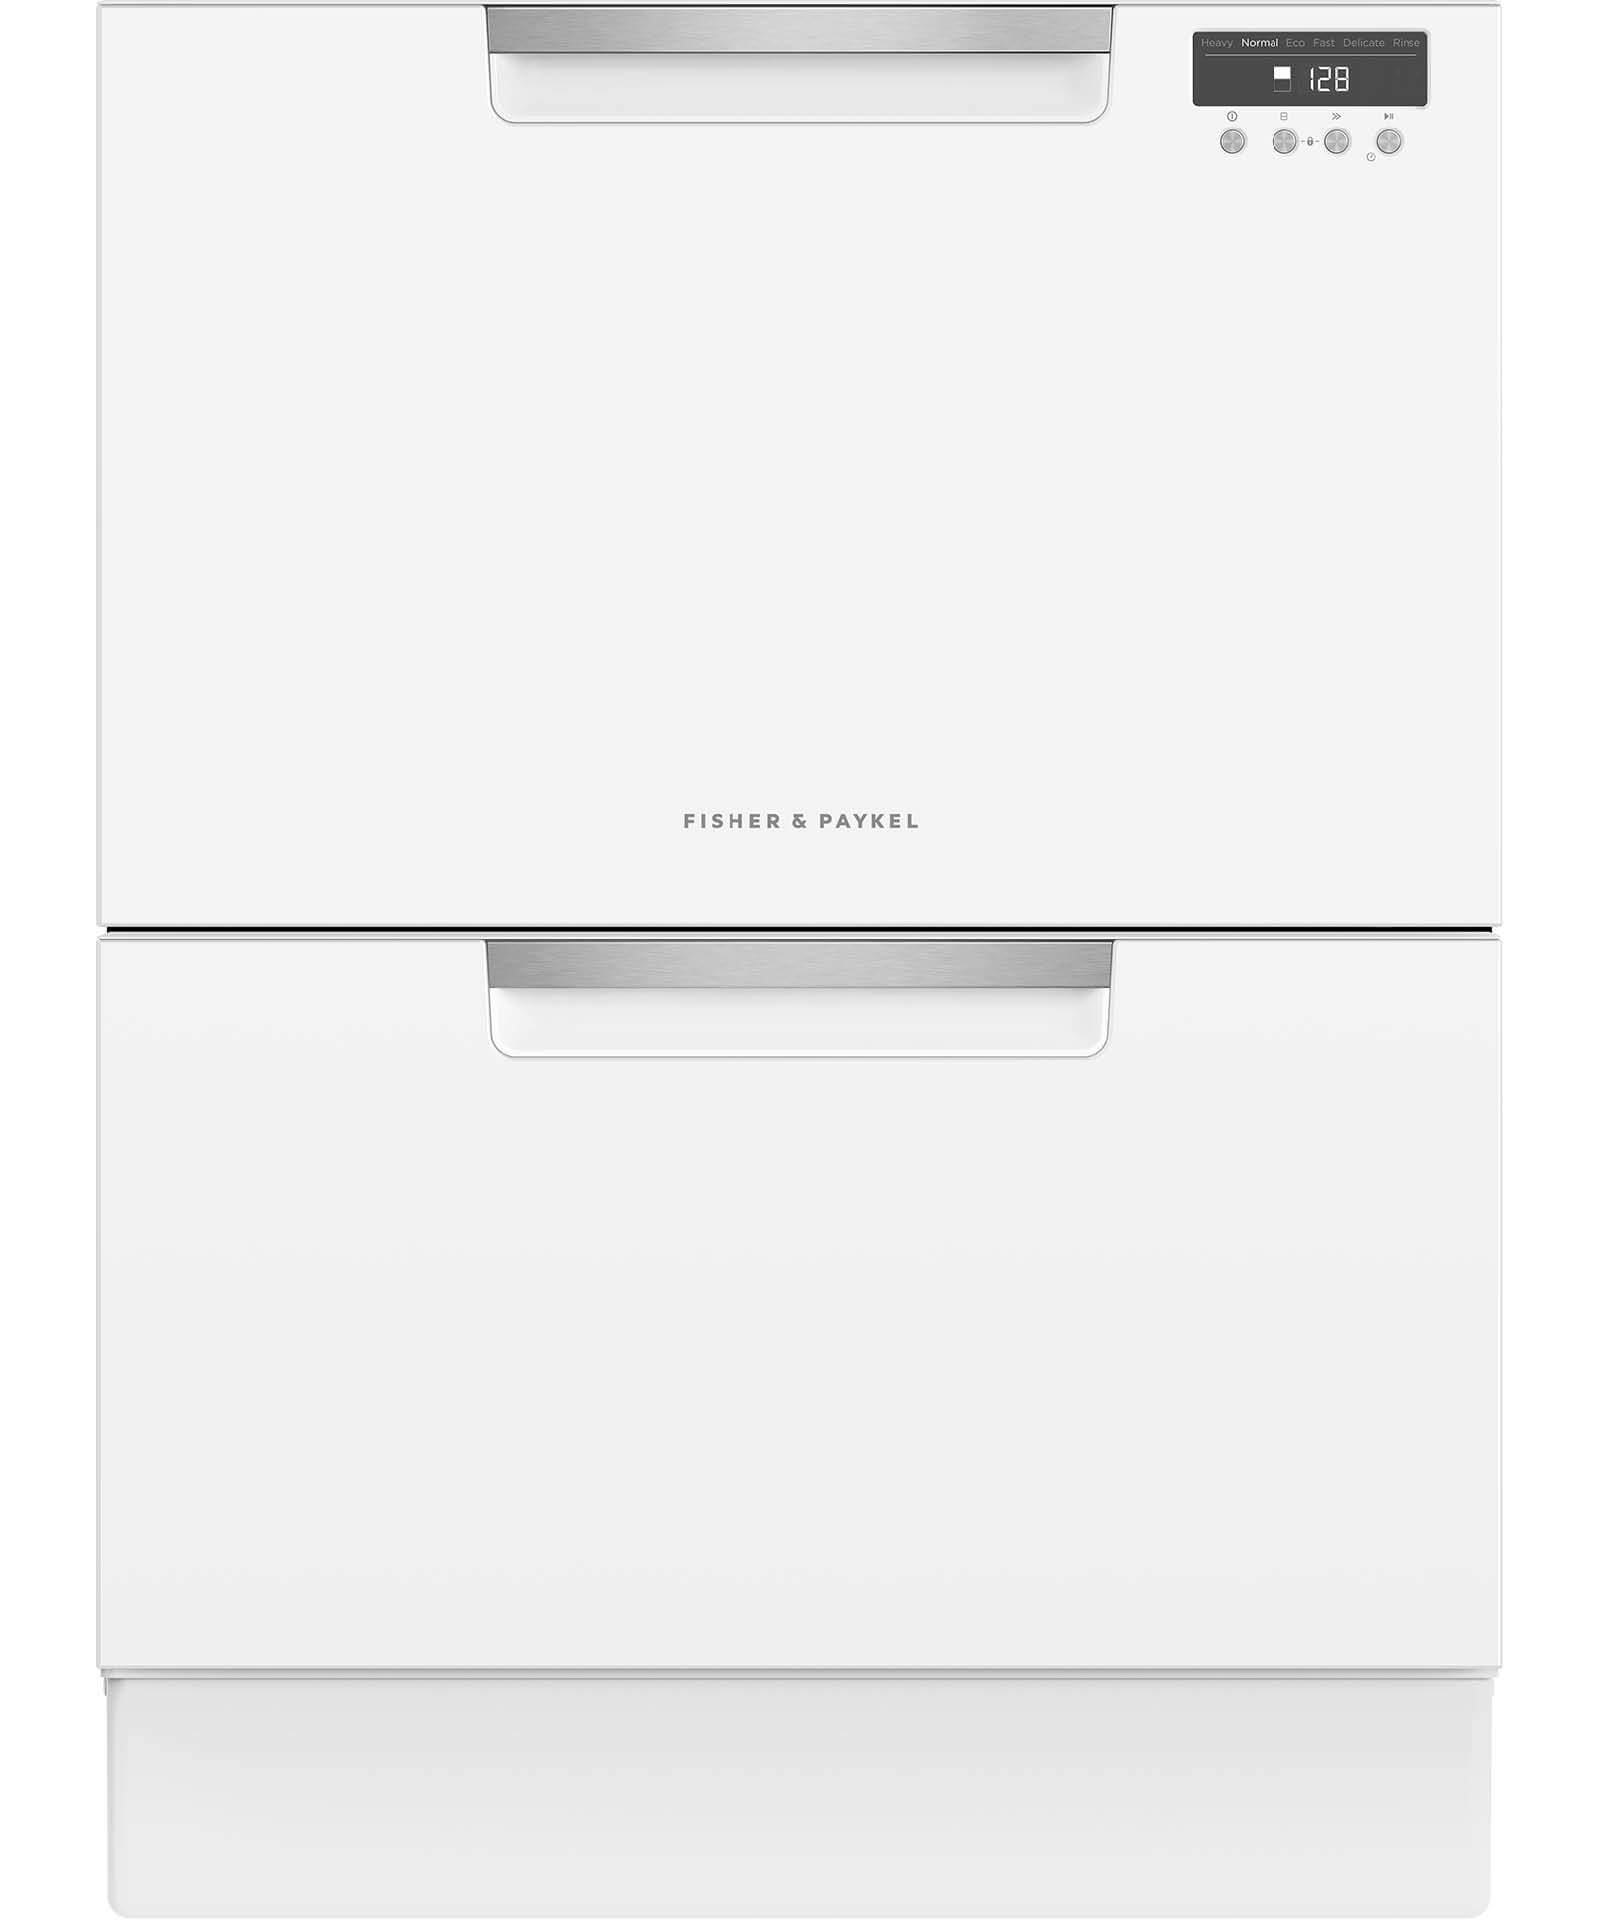 DD60DAHW9 - Double DishDrawer™ Dishwasher with water softener - 81608